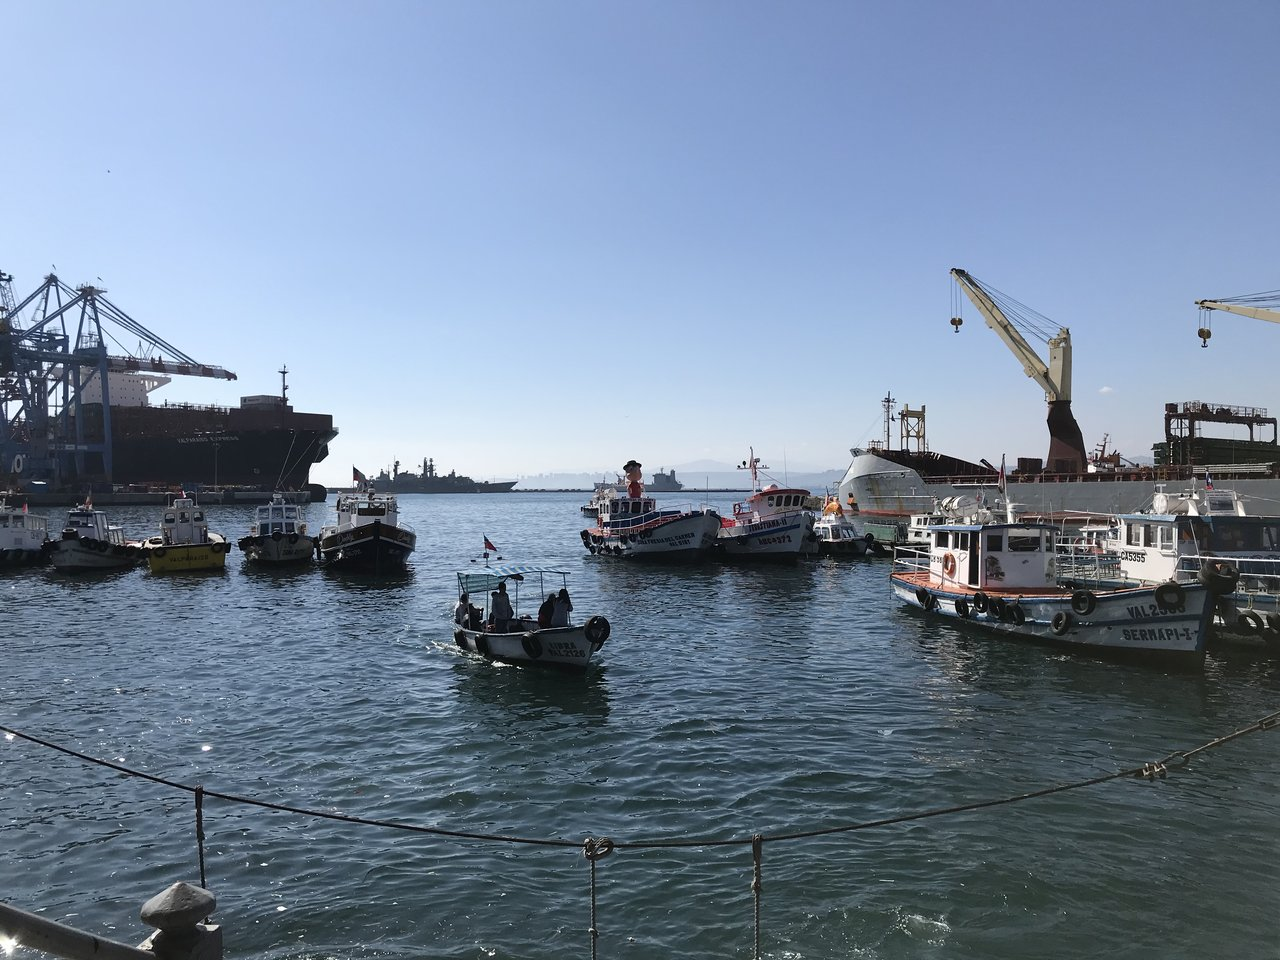 The harbor was bustling.   Photo taken by Lauri F